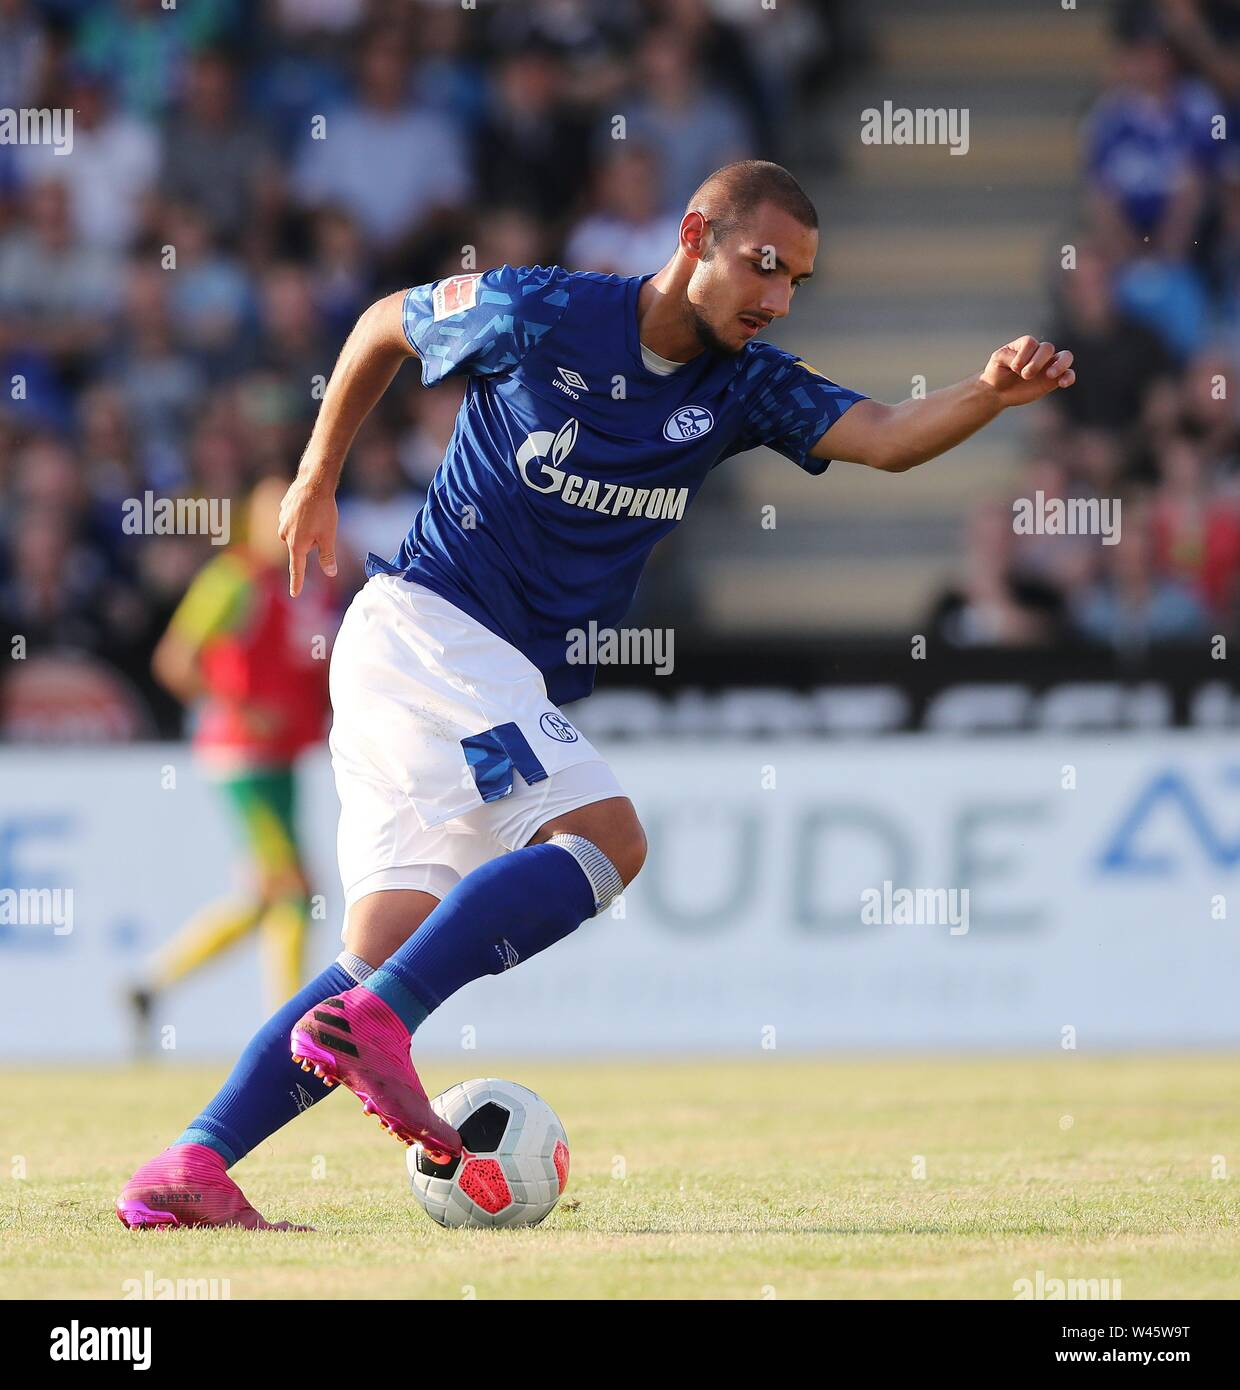 Lotte, Deutschland. 19th July, 2019. firo: 19.07.2019, football, 1.Bundesliga, season 2019/2020, friendly match, FC Schalke 04 - Norwich City Ahmed KUTUCU, Schalke, single action | usage worldwide Credit: dpa/Alamy Live News - Stock Image